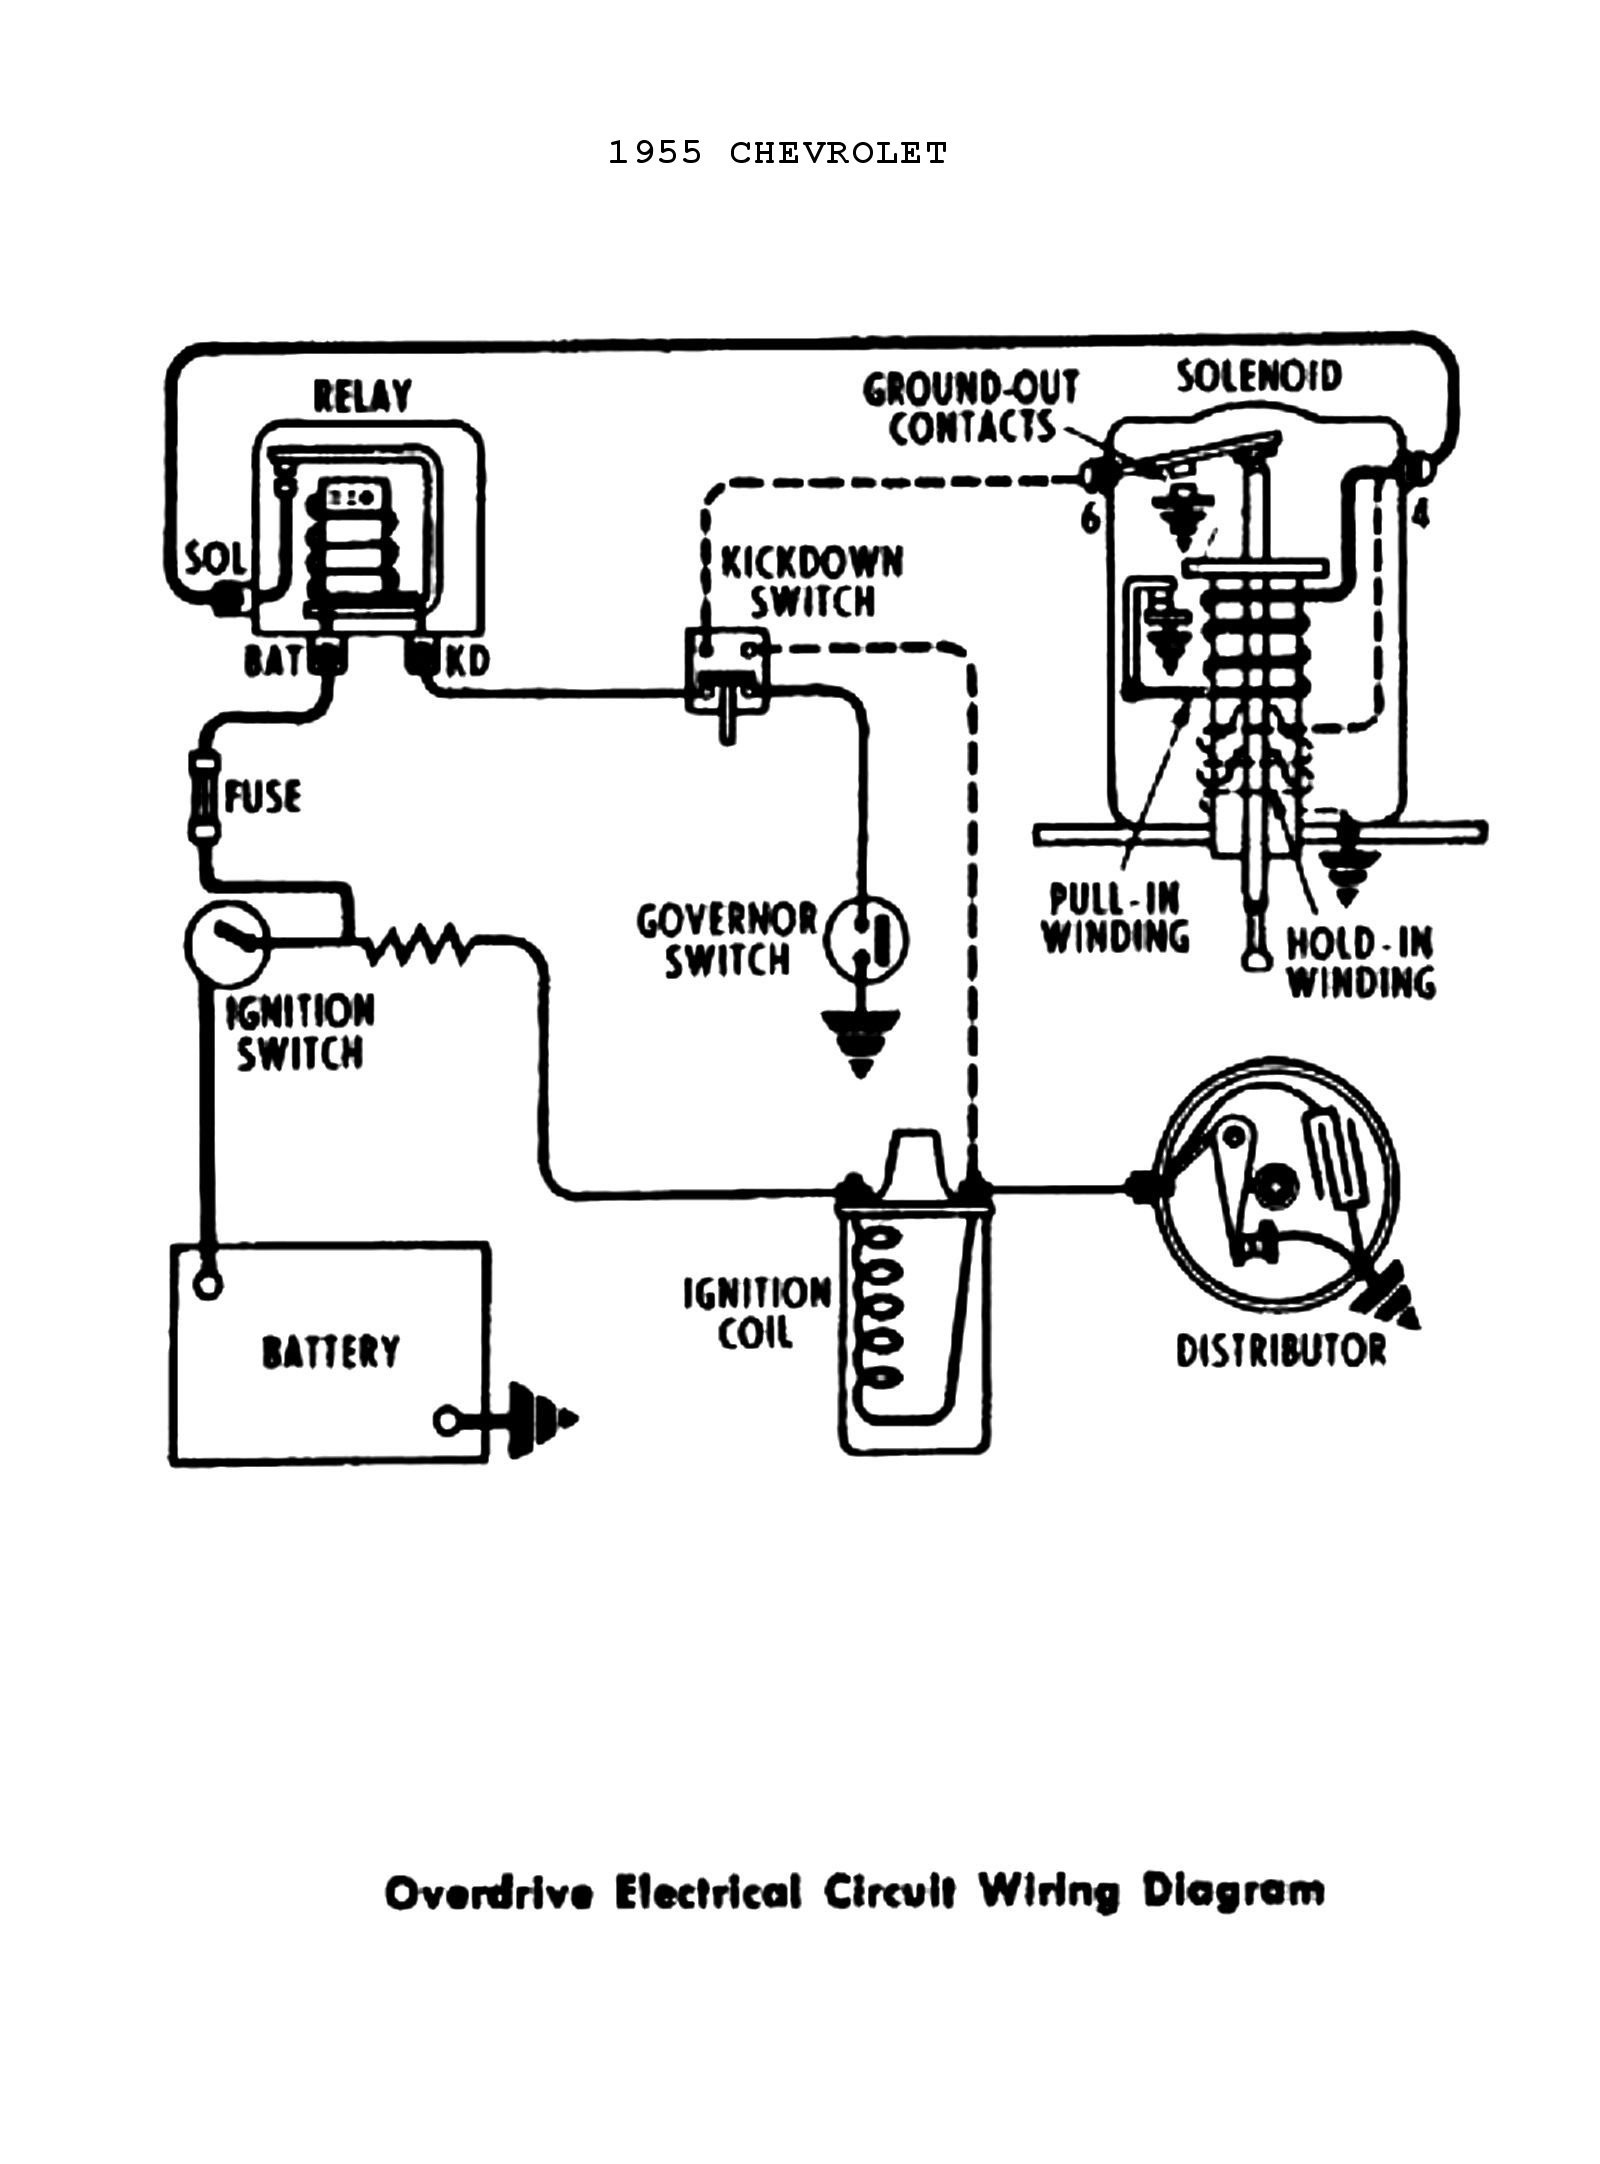 1955 chevy ignition switch wiring diagram furthermore 1955 chevy rh hannalupi co